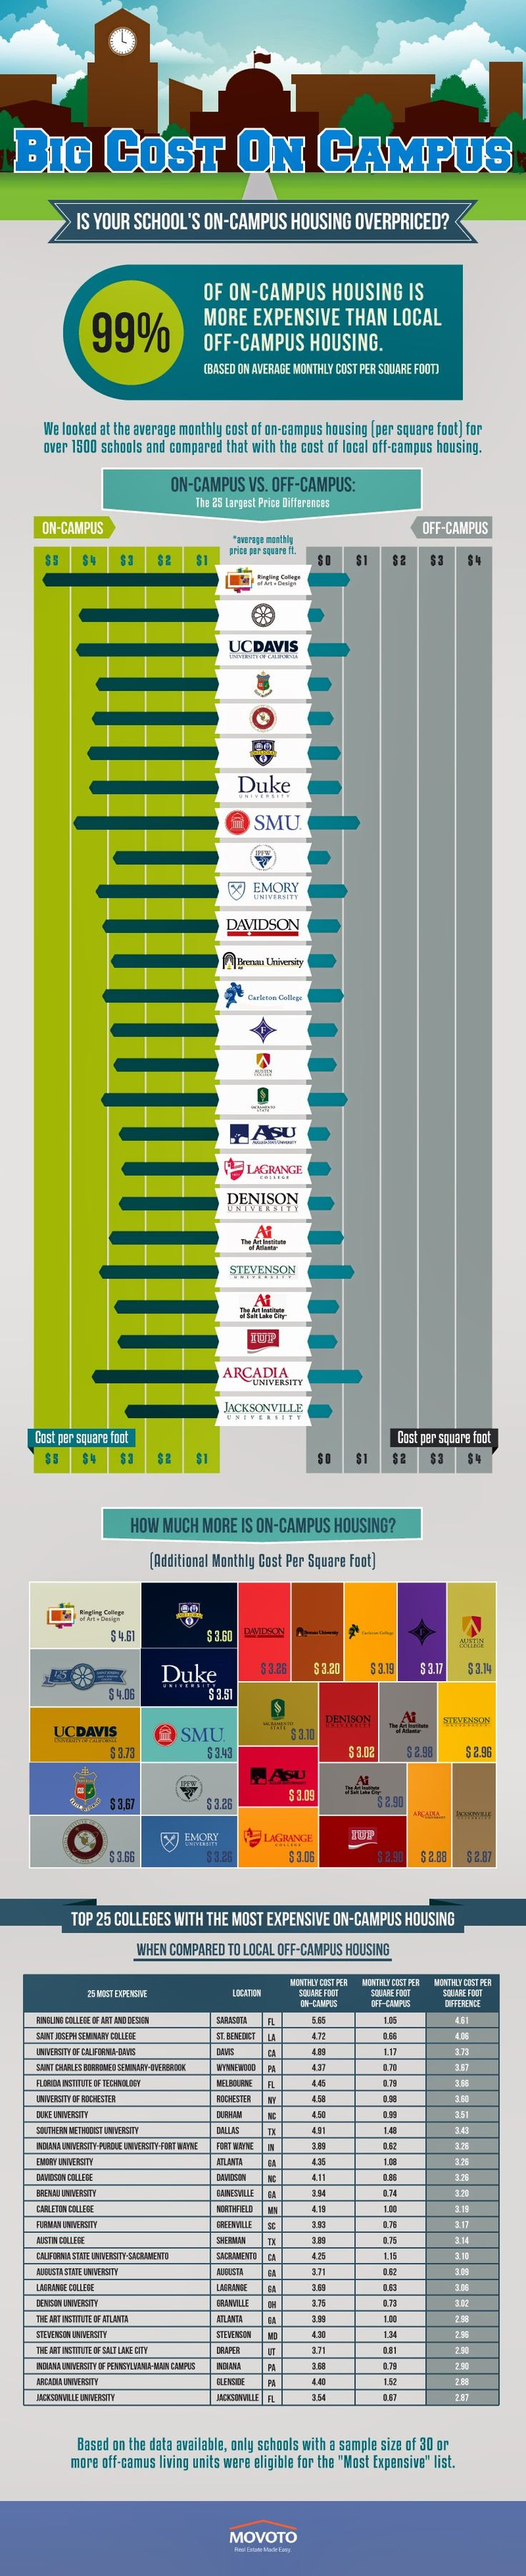 Living On Campus Costs More than Off Campus (Infographic) | http://www.milliondollarninja.com/living-on-campus-costs-more-than-off-campus-infographic/